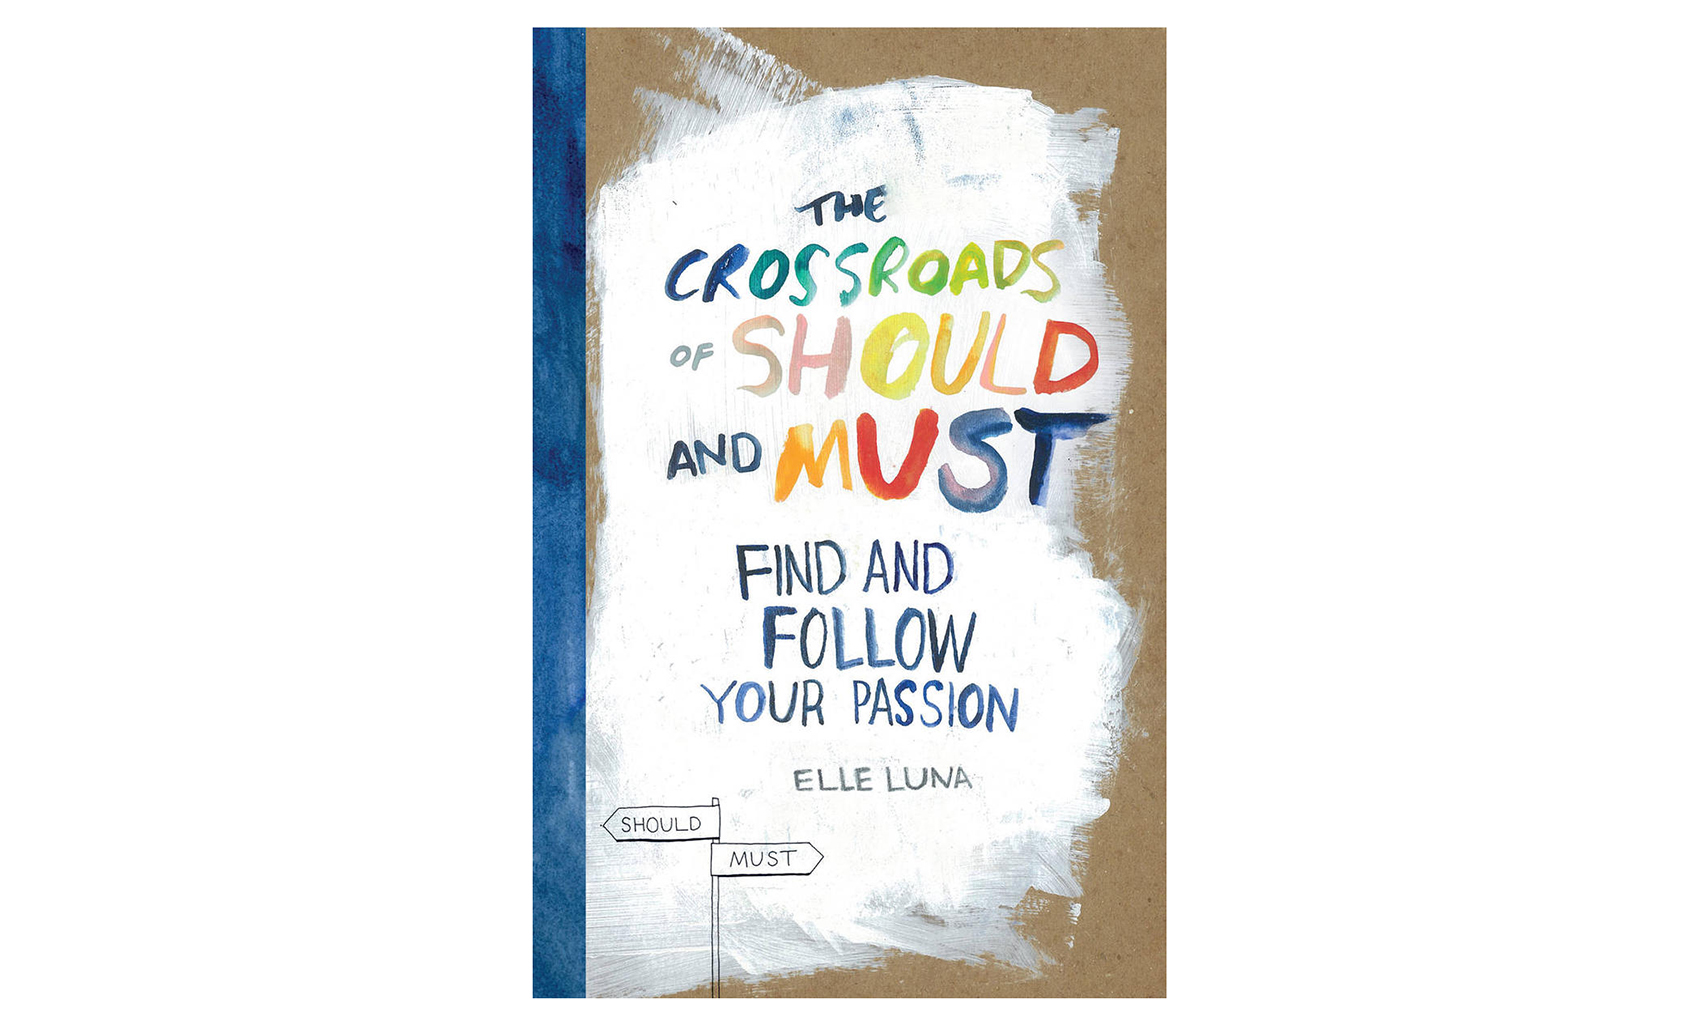 The Crossroads of Should and Must: Find and Follow Your Passion, by Elle Luna